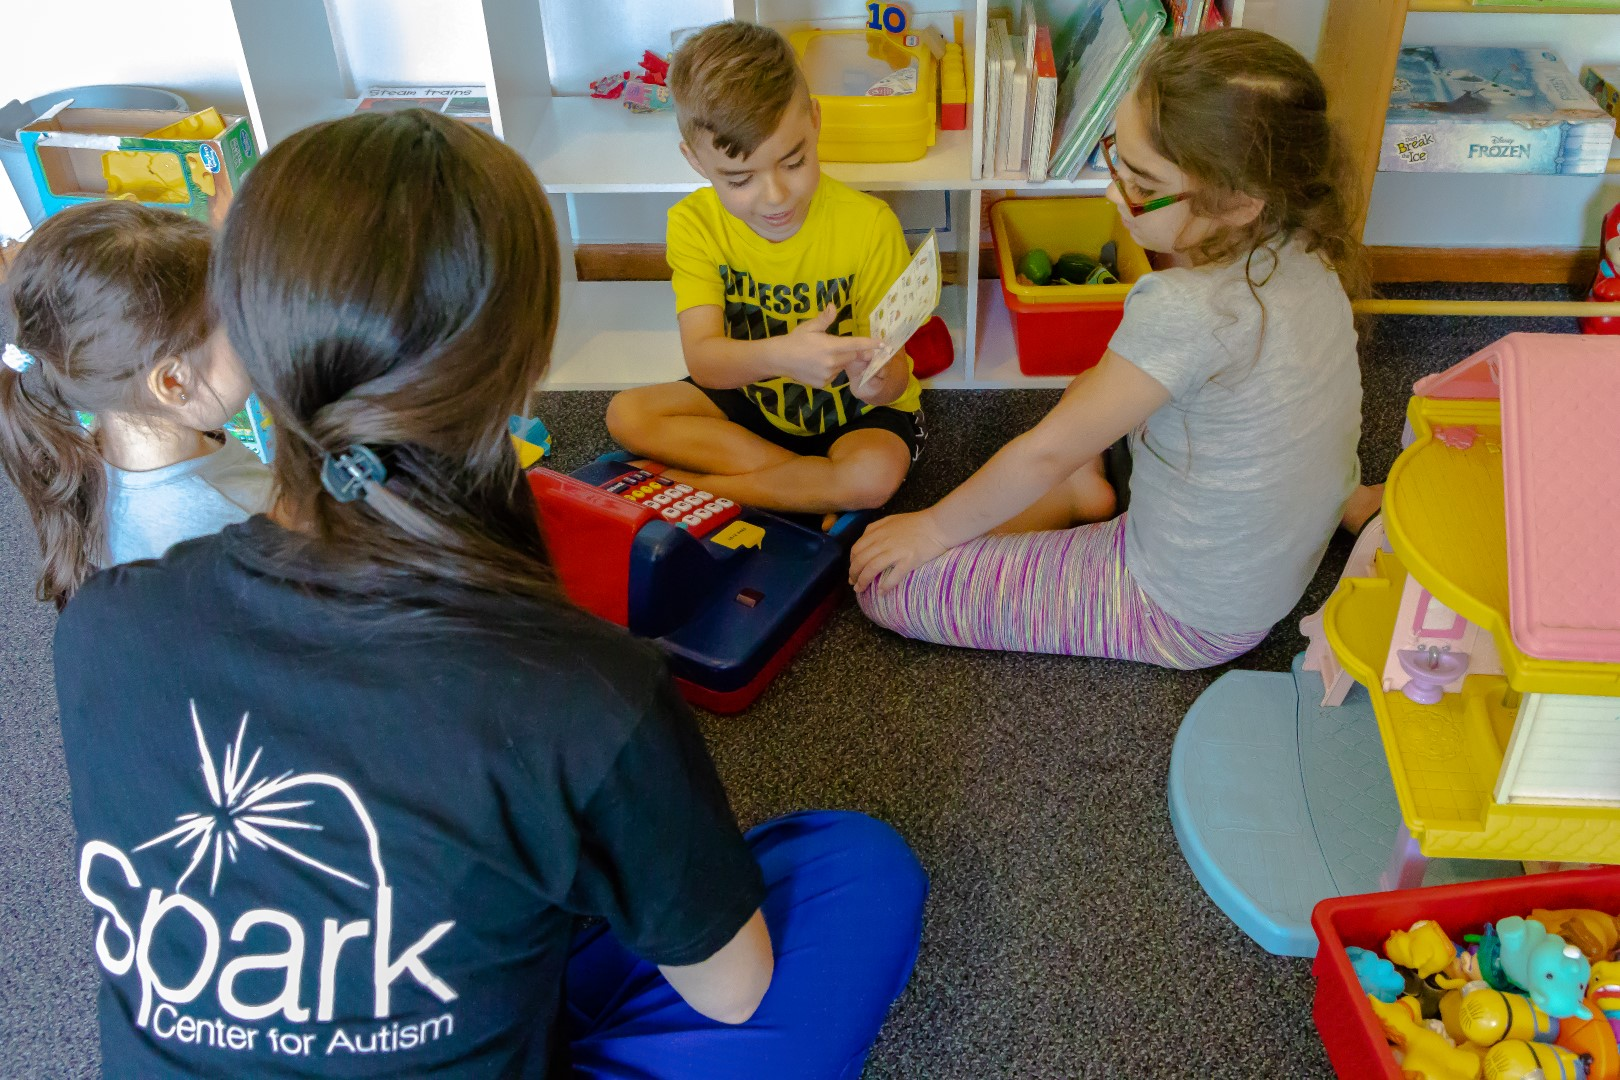 Spark Center for Autism - Sharing with the kids